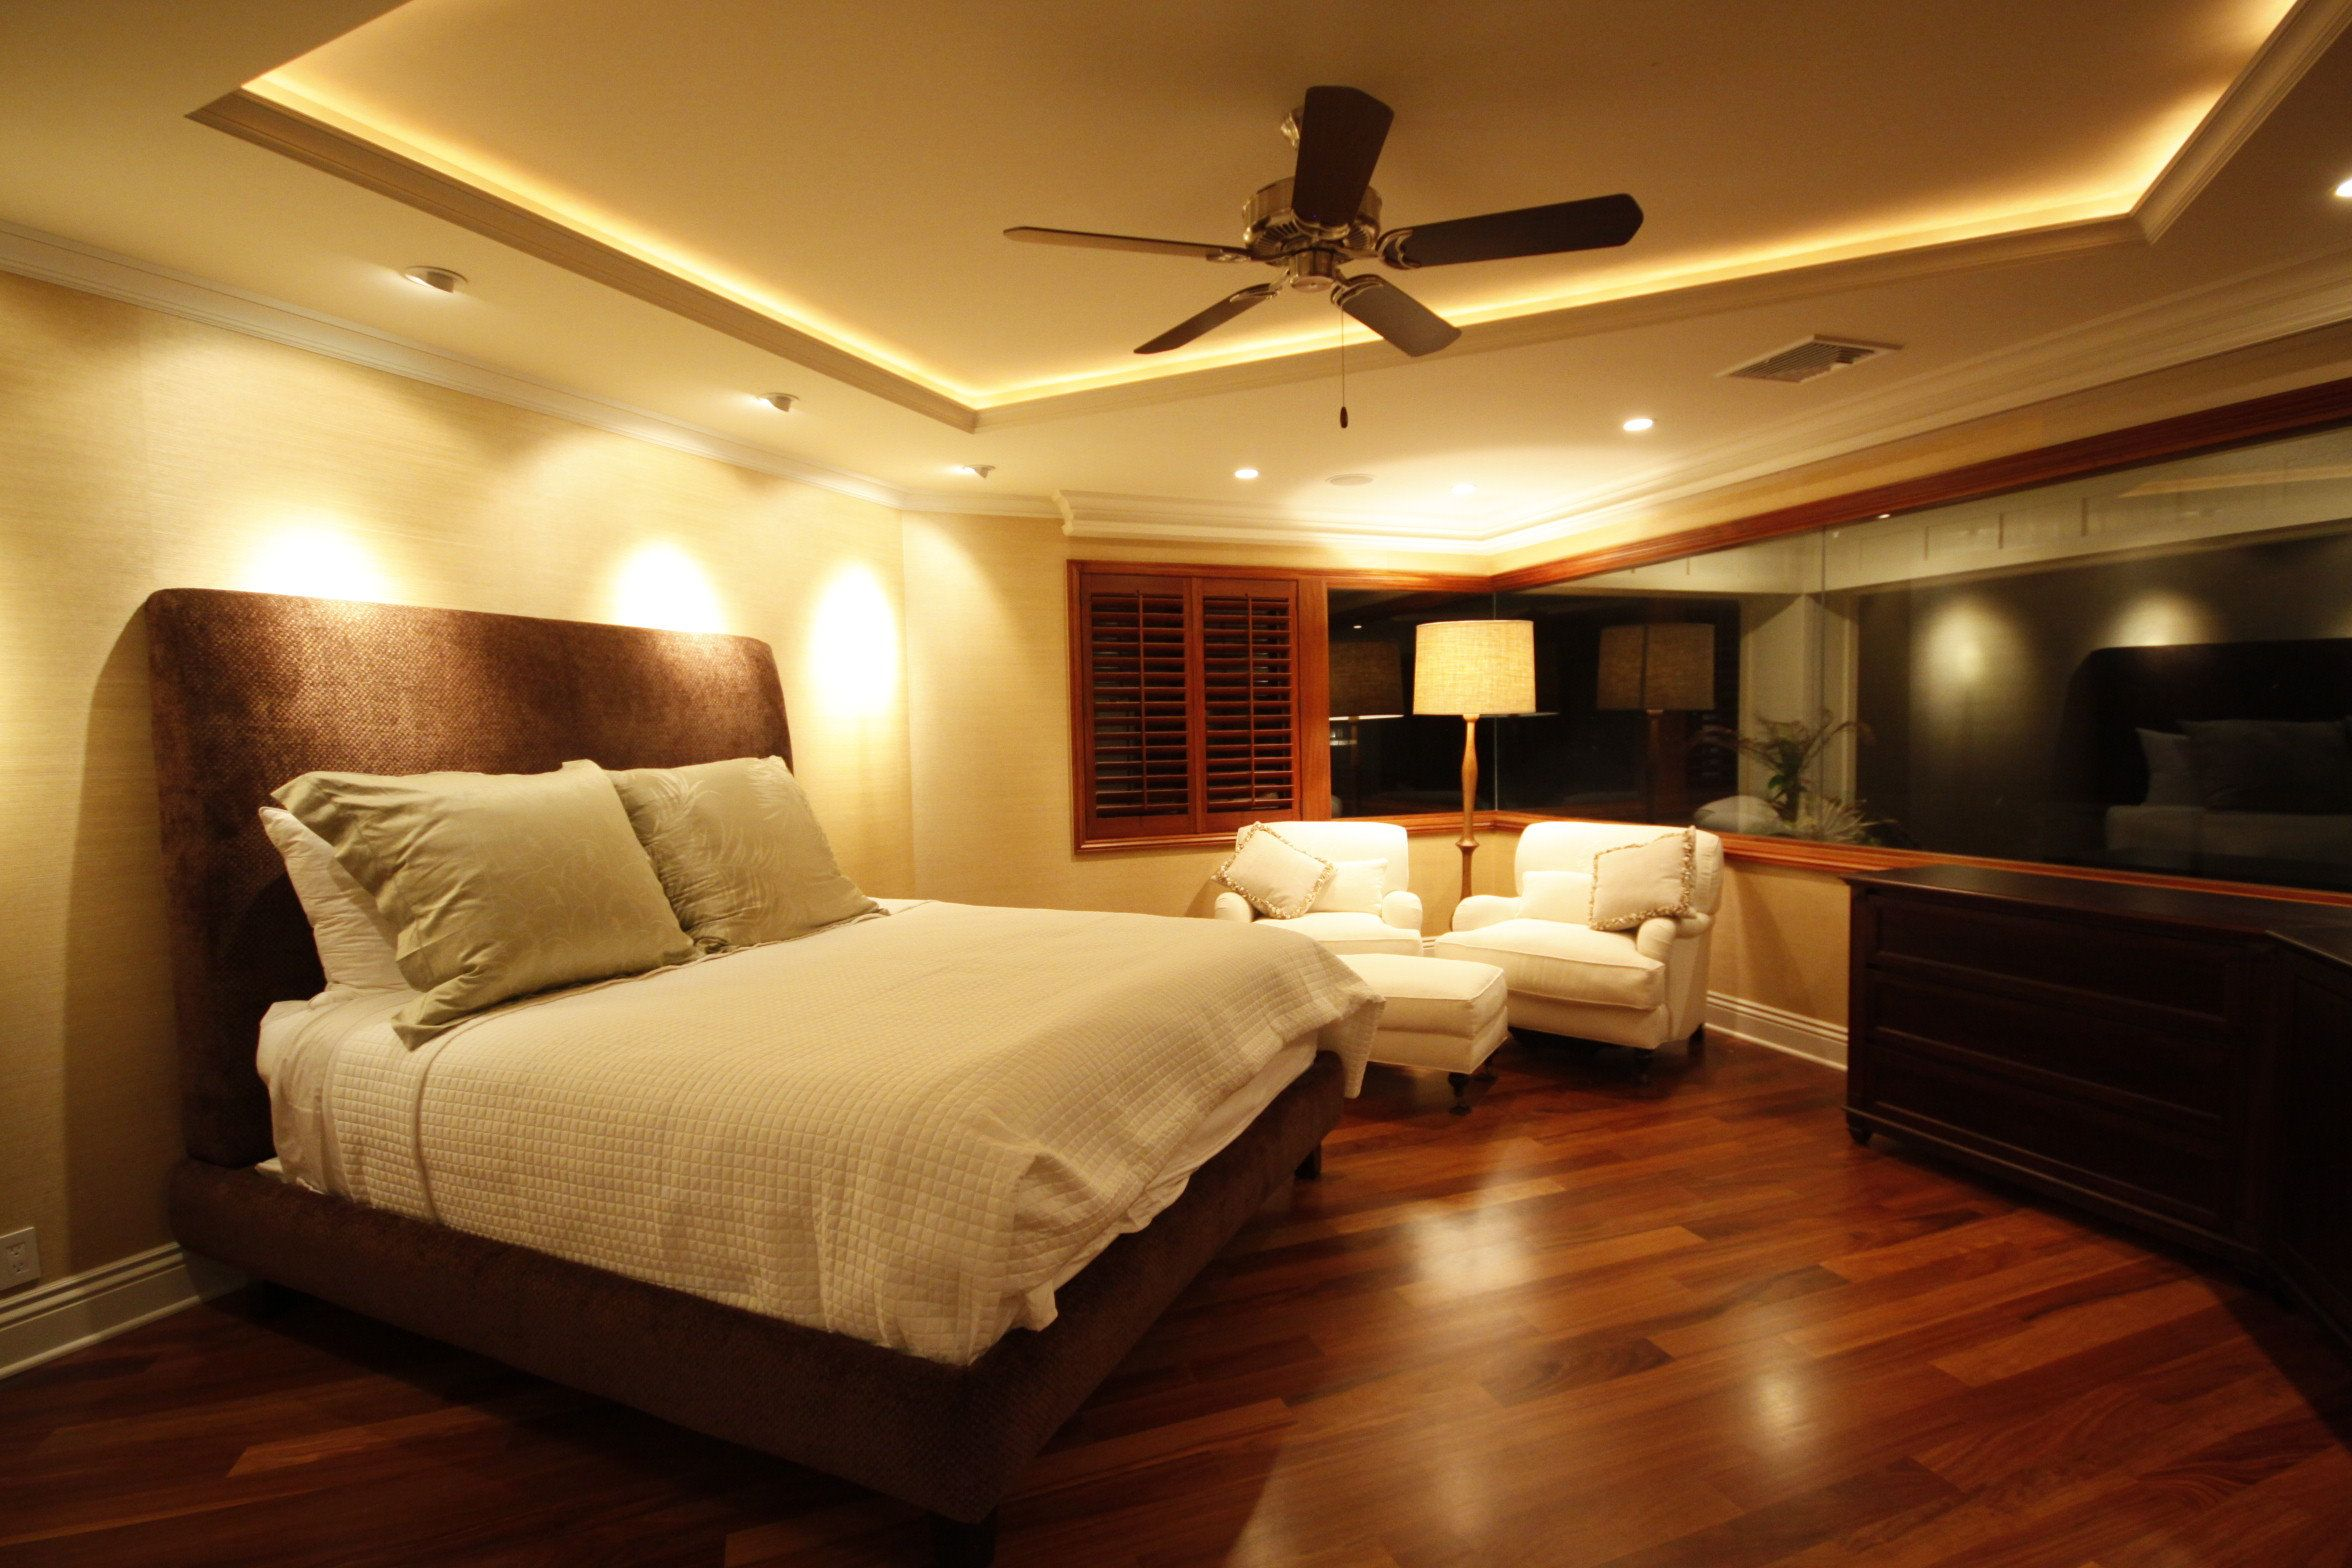 Appealing master bedroom modern decor with wooden floors Luxury bedroom ideas pictures